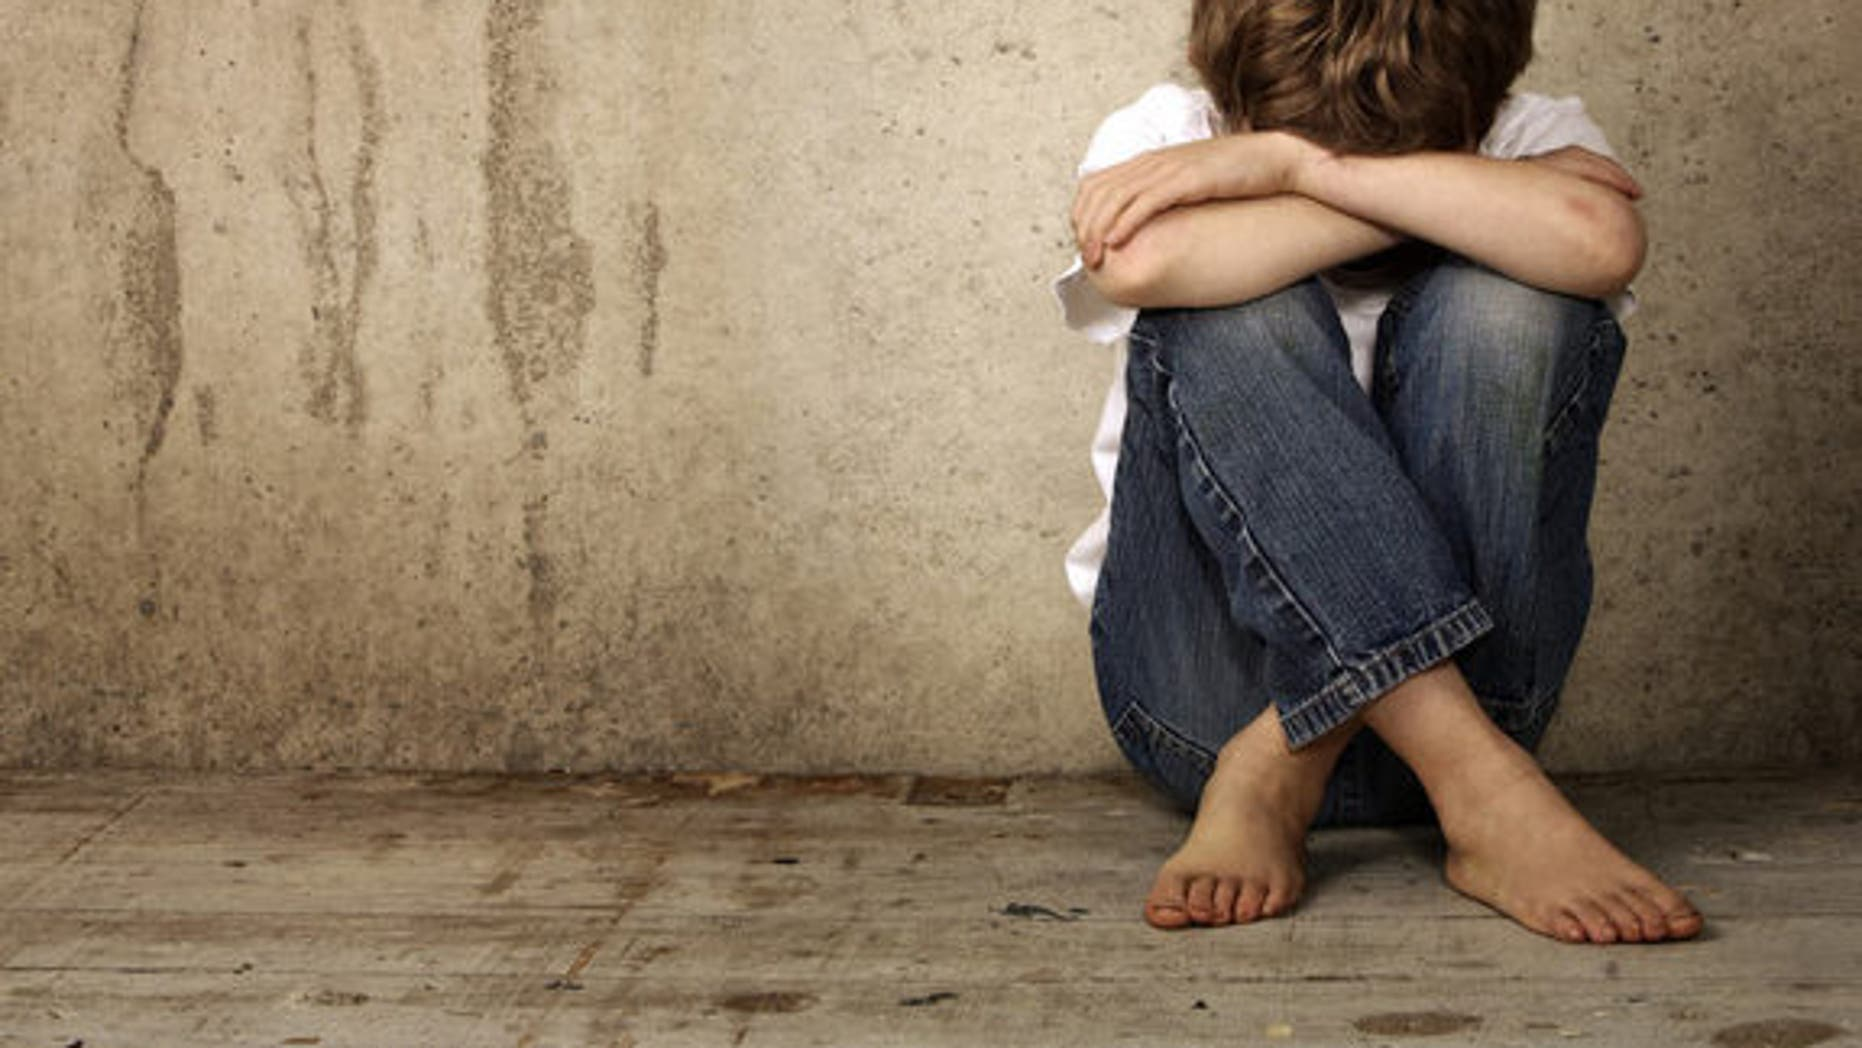 In Us 1 In 8 Kids Maltreated By Age 18 >> 1 In 8 Kids Experience Maltreatment Study Says Fox News